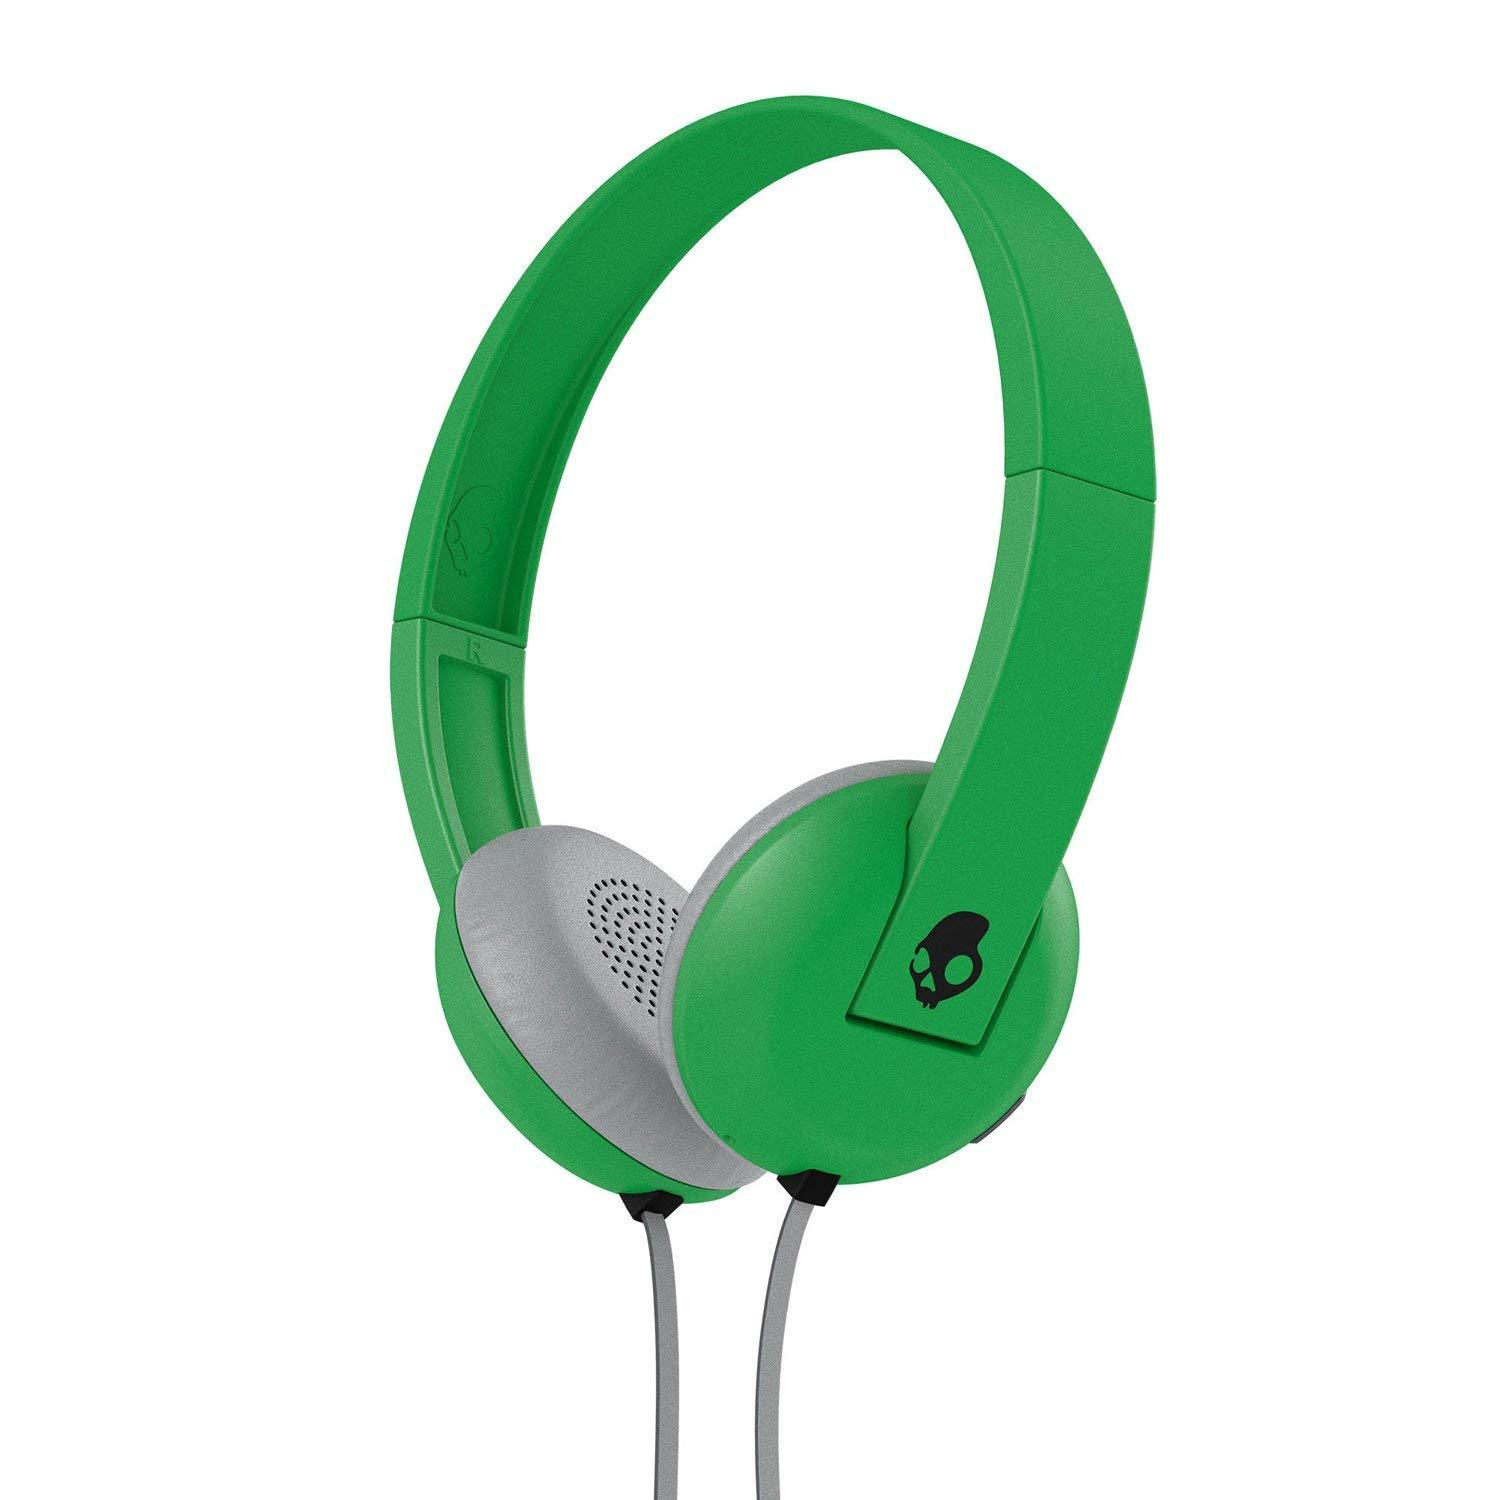 Skullcandy Uproar On-Ear Headphones with Built-in Mic and Remote, Ill Famed Green